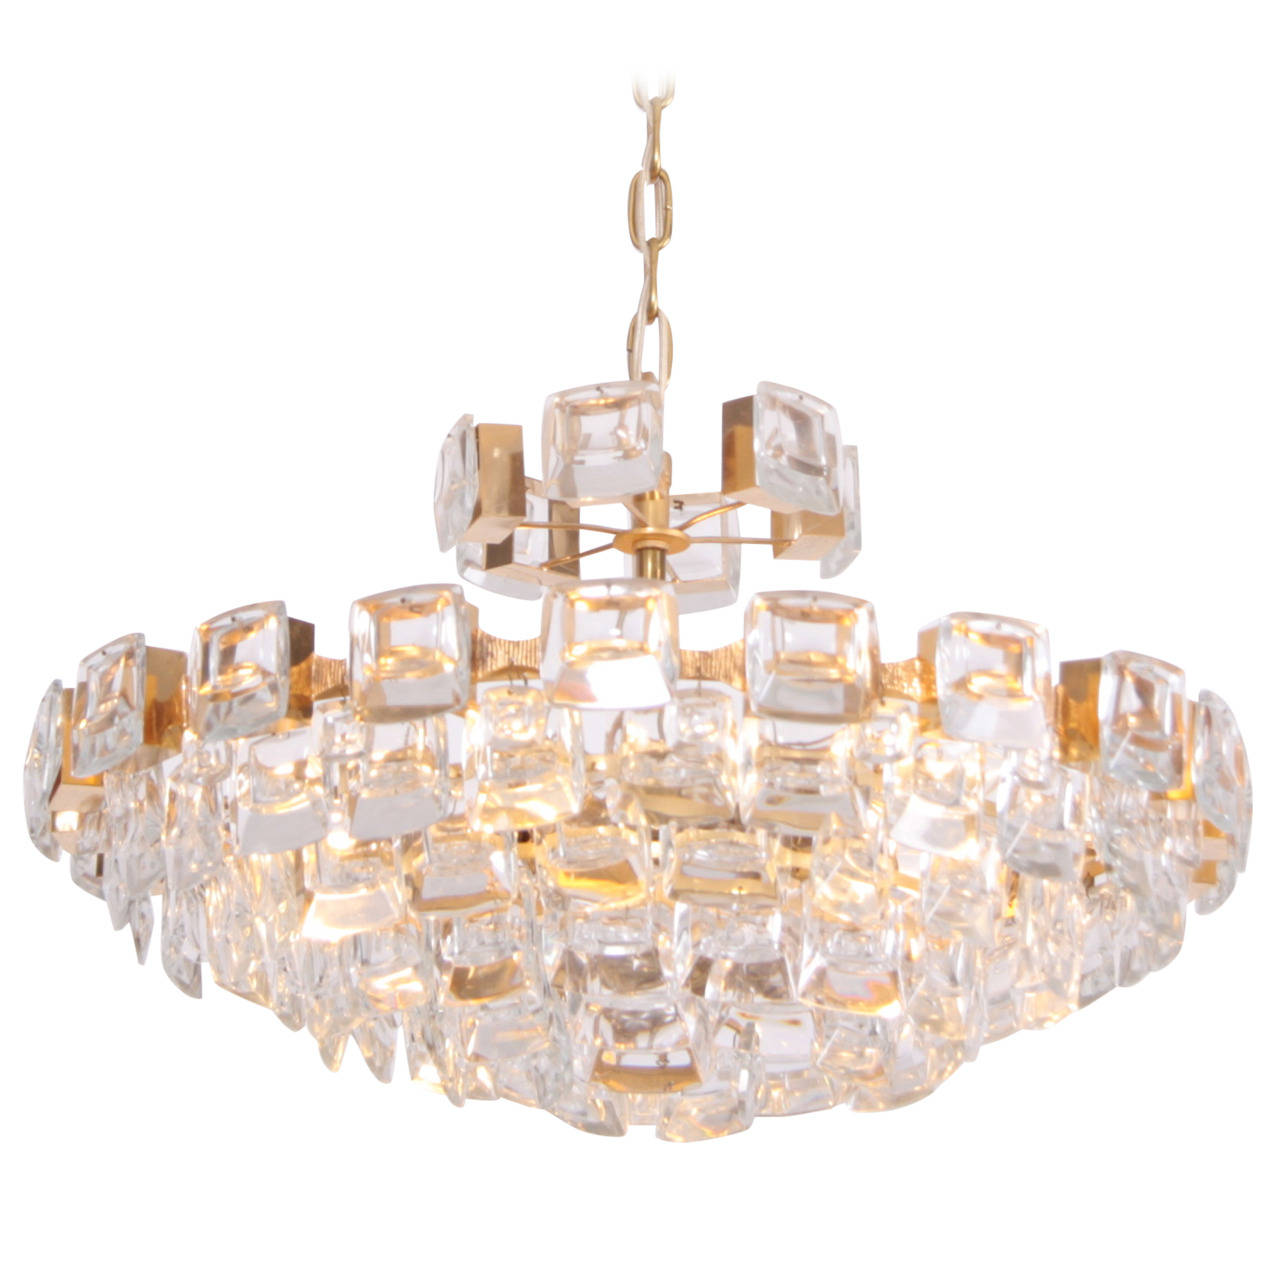 Glamorous Palwa Gilded Brass and Glass Jewel Chandelier